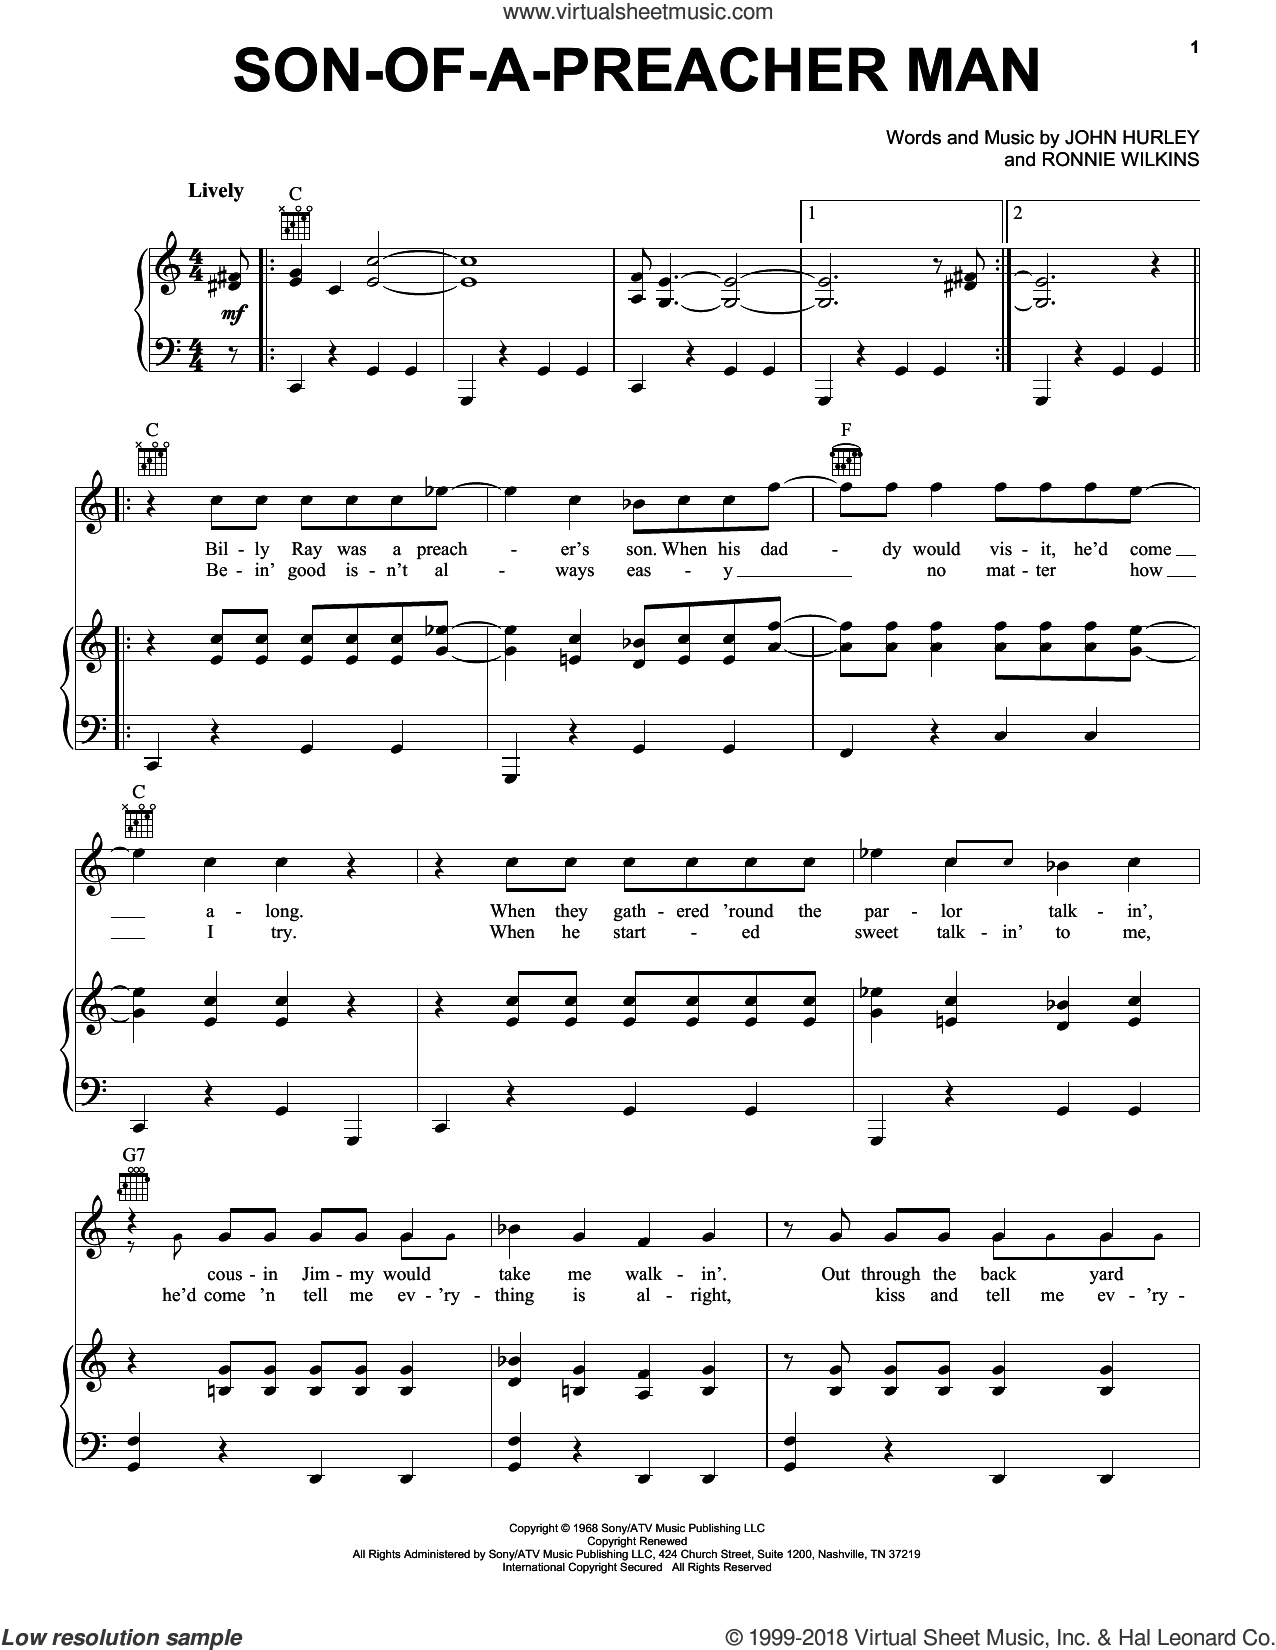 Son-Of-A-Preacher Man sheet music for voice, piano or guitar by Dusty Springfield, John Hurley and Ronnie Wilkins, intermediate skill level